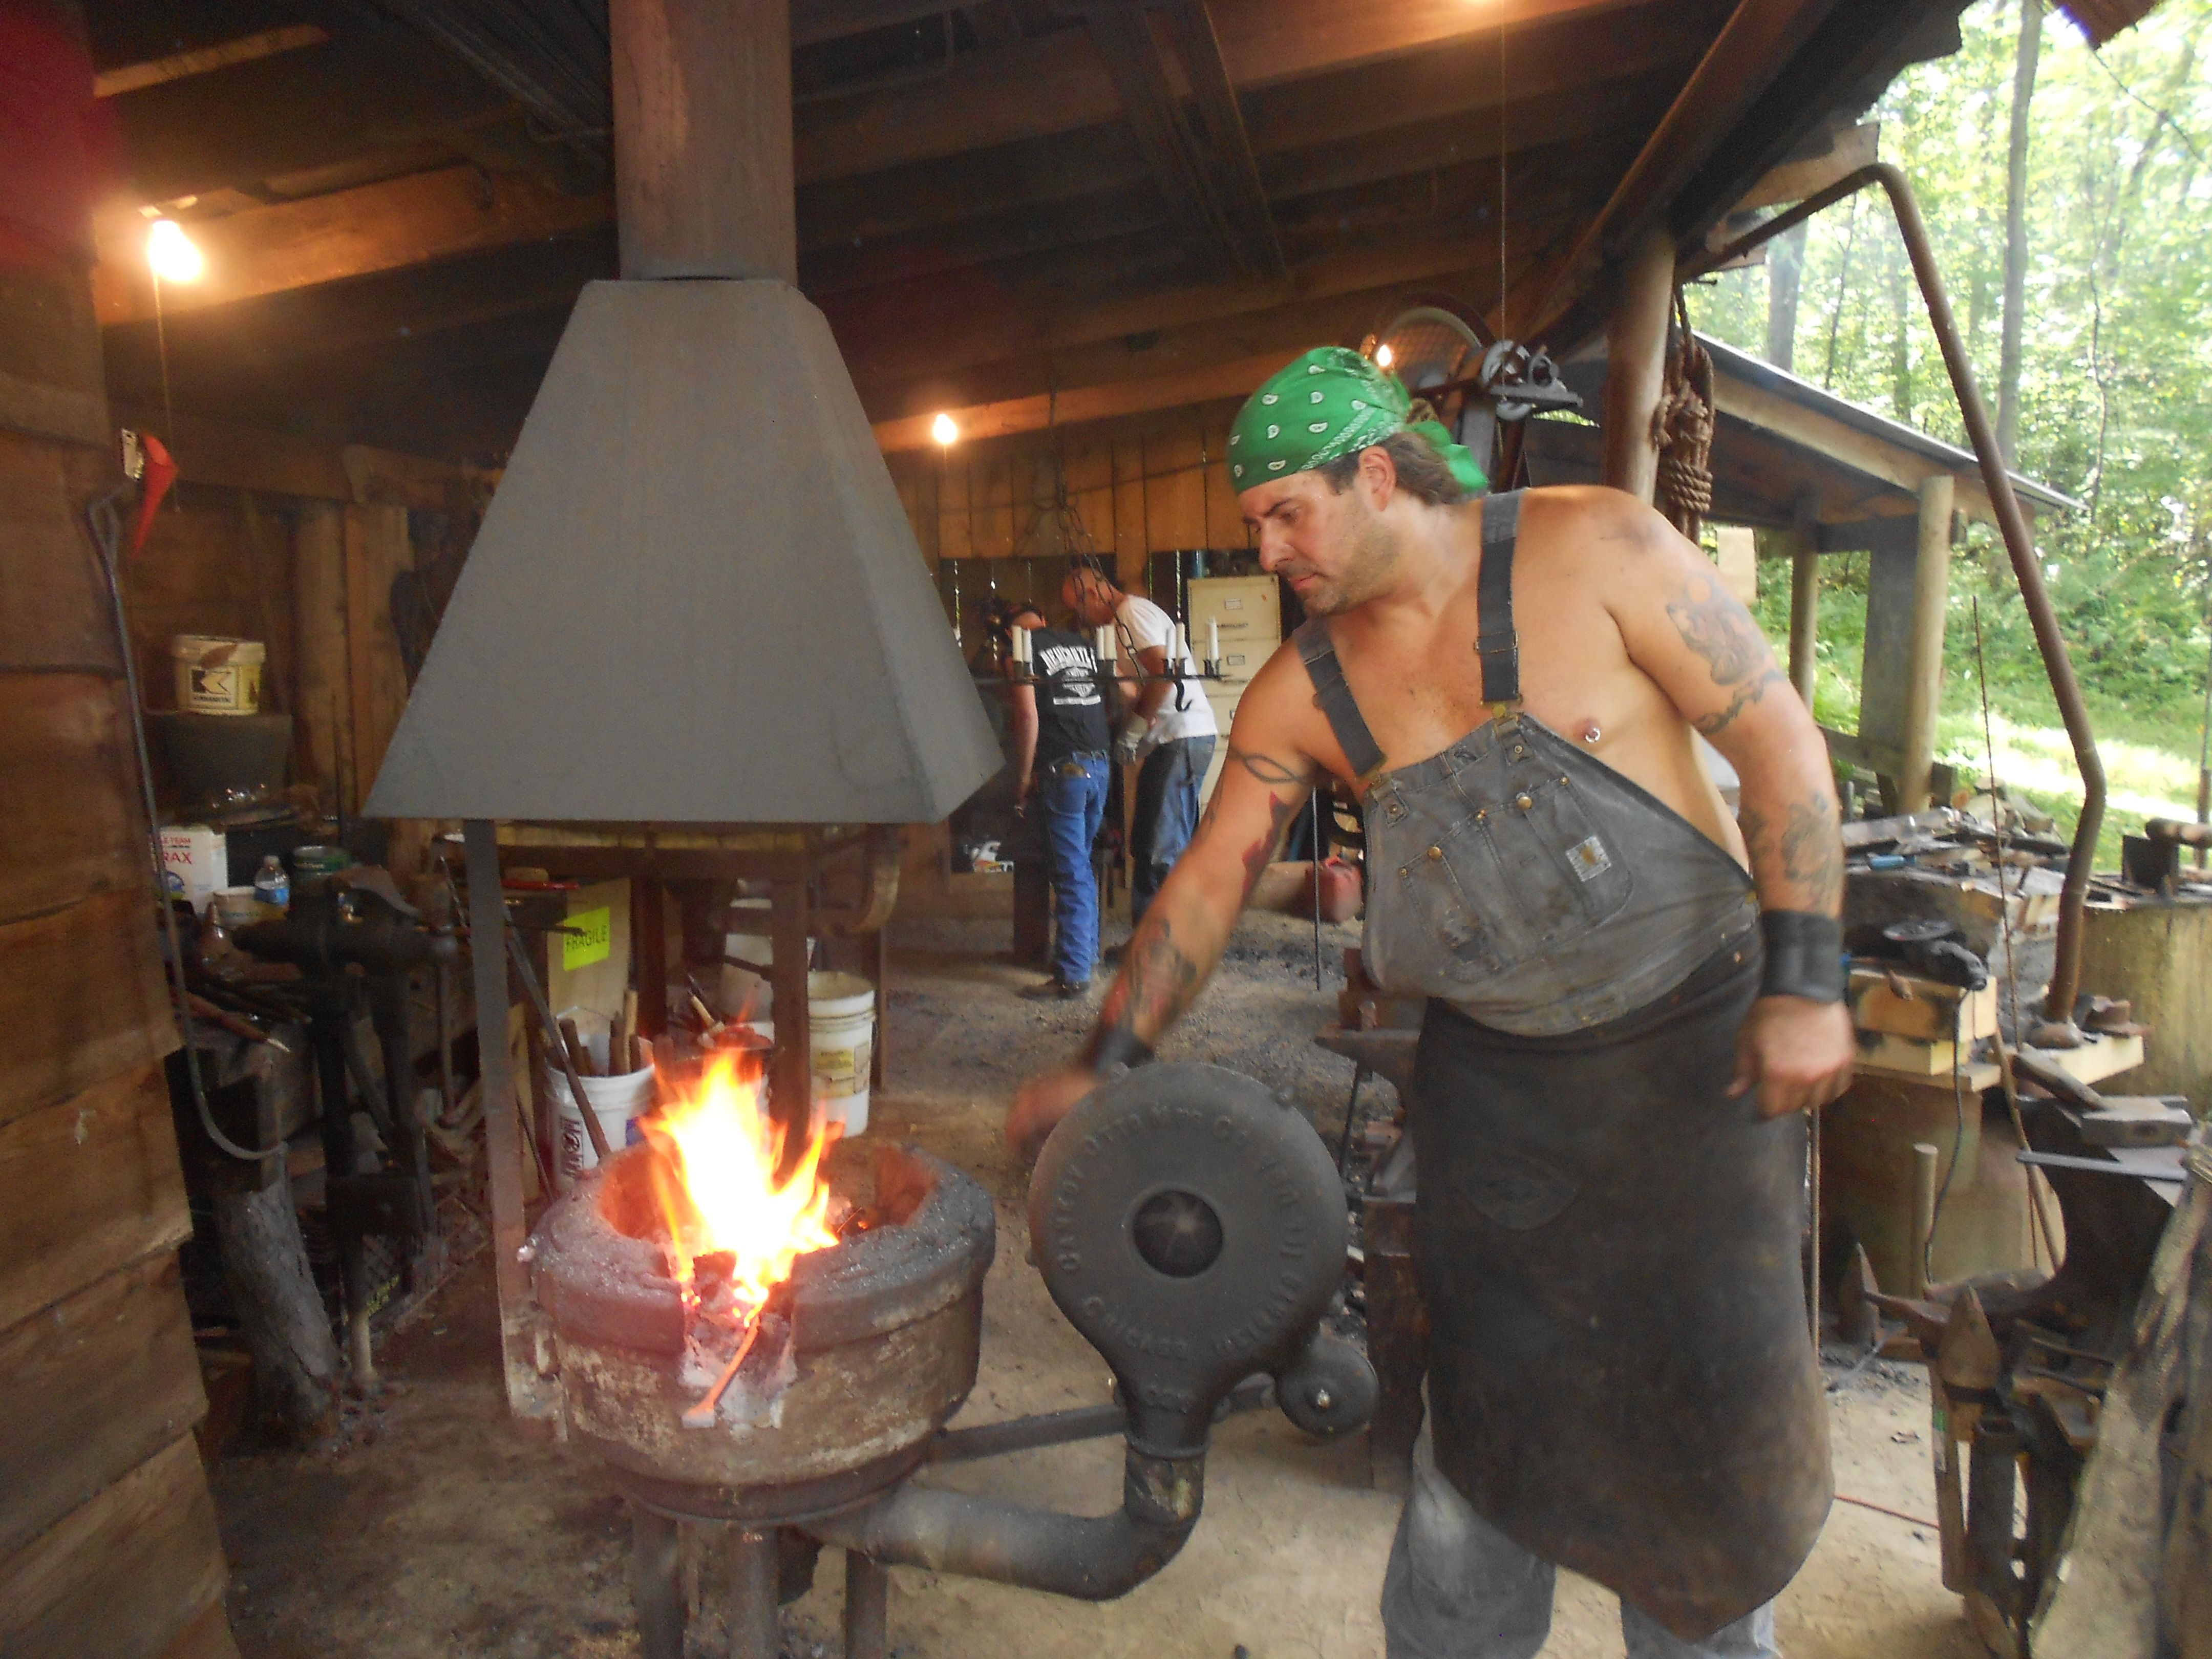 Hammer in my grandpa was a blacksmith, making horseshoes